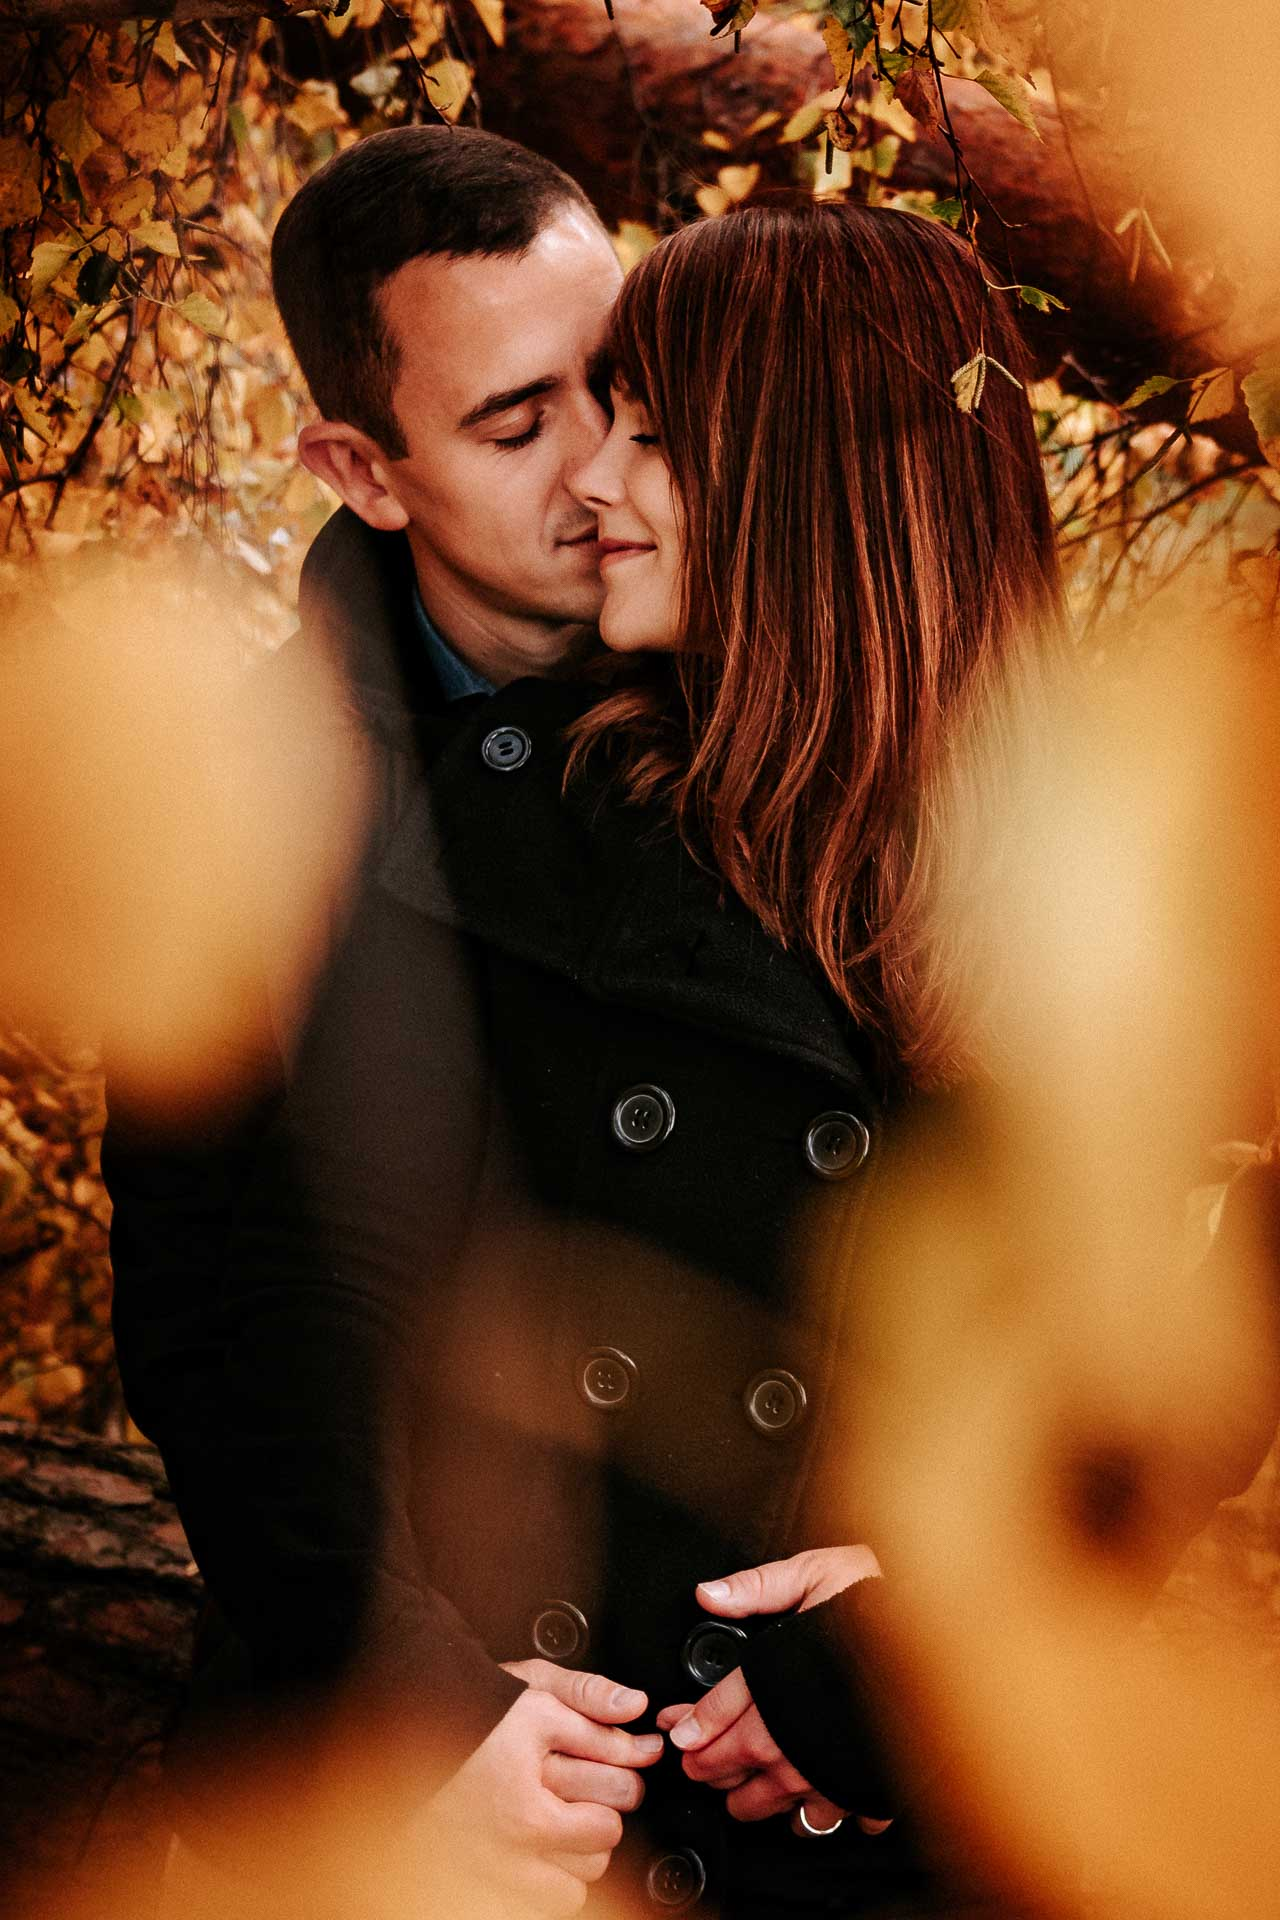 Engagement-Shooting im Herbst